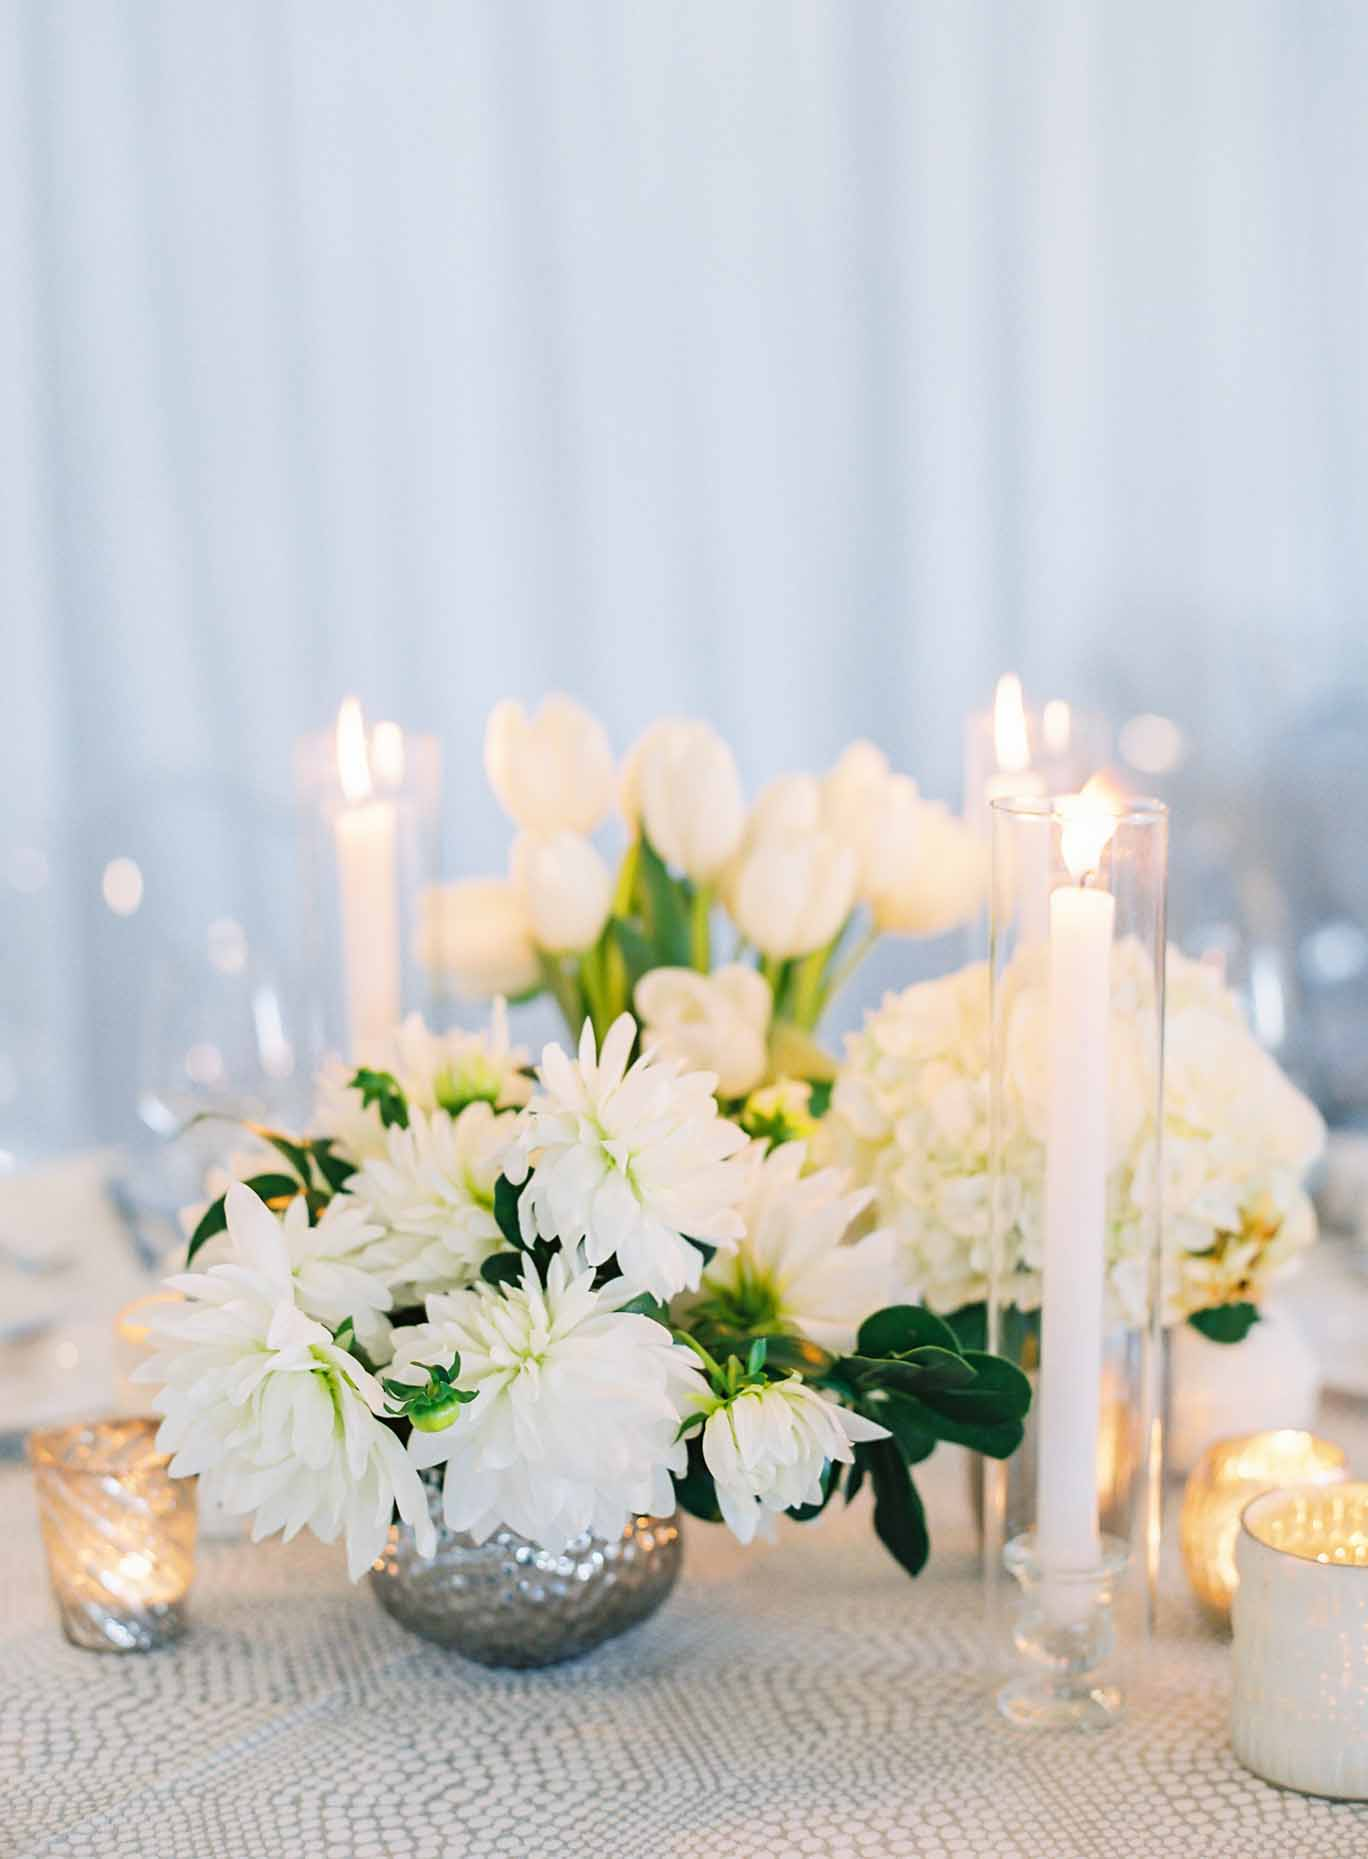 Centerpiece of white flowers with greenery in silver vases, with taper candles